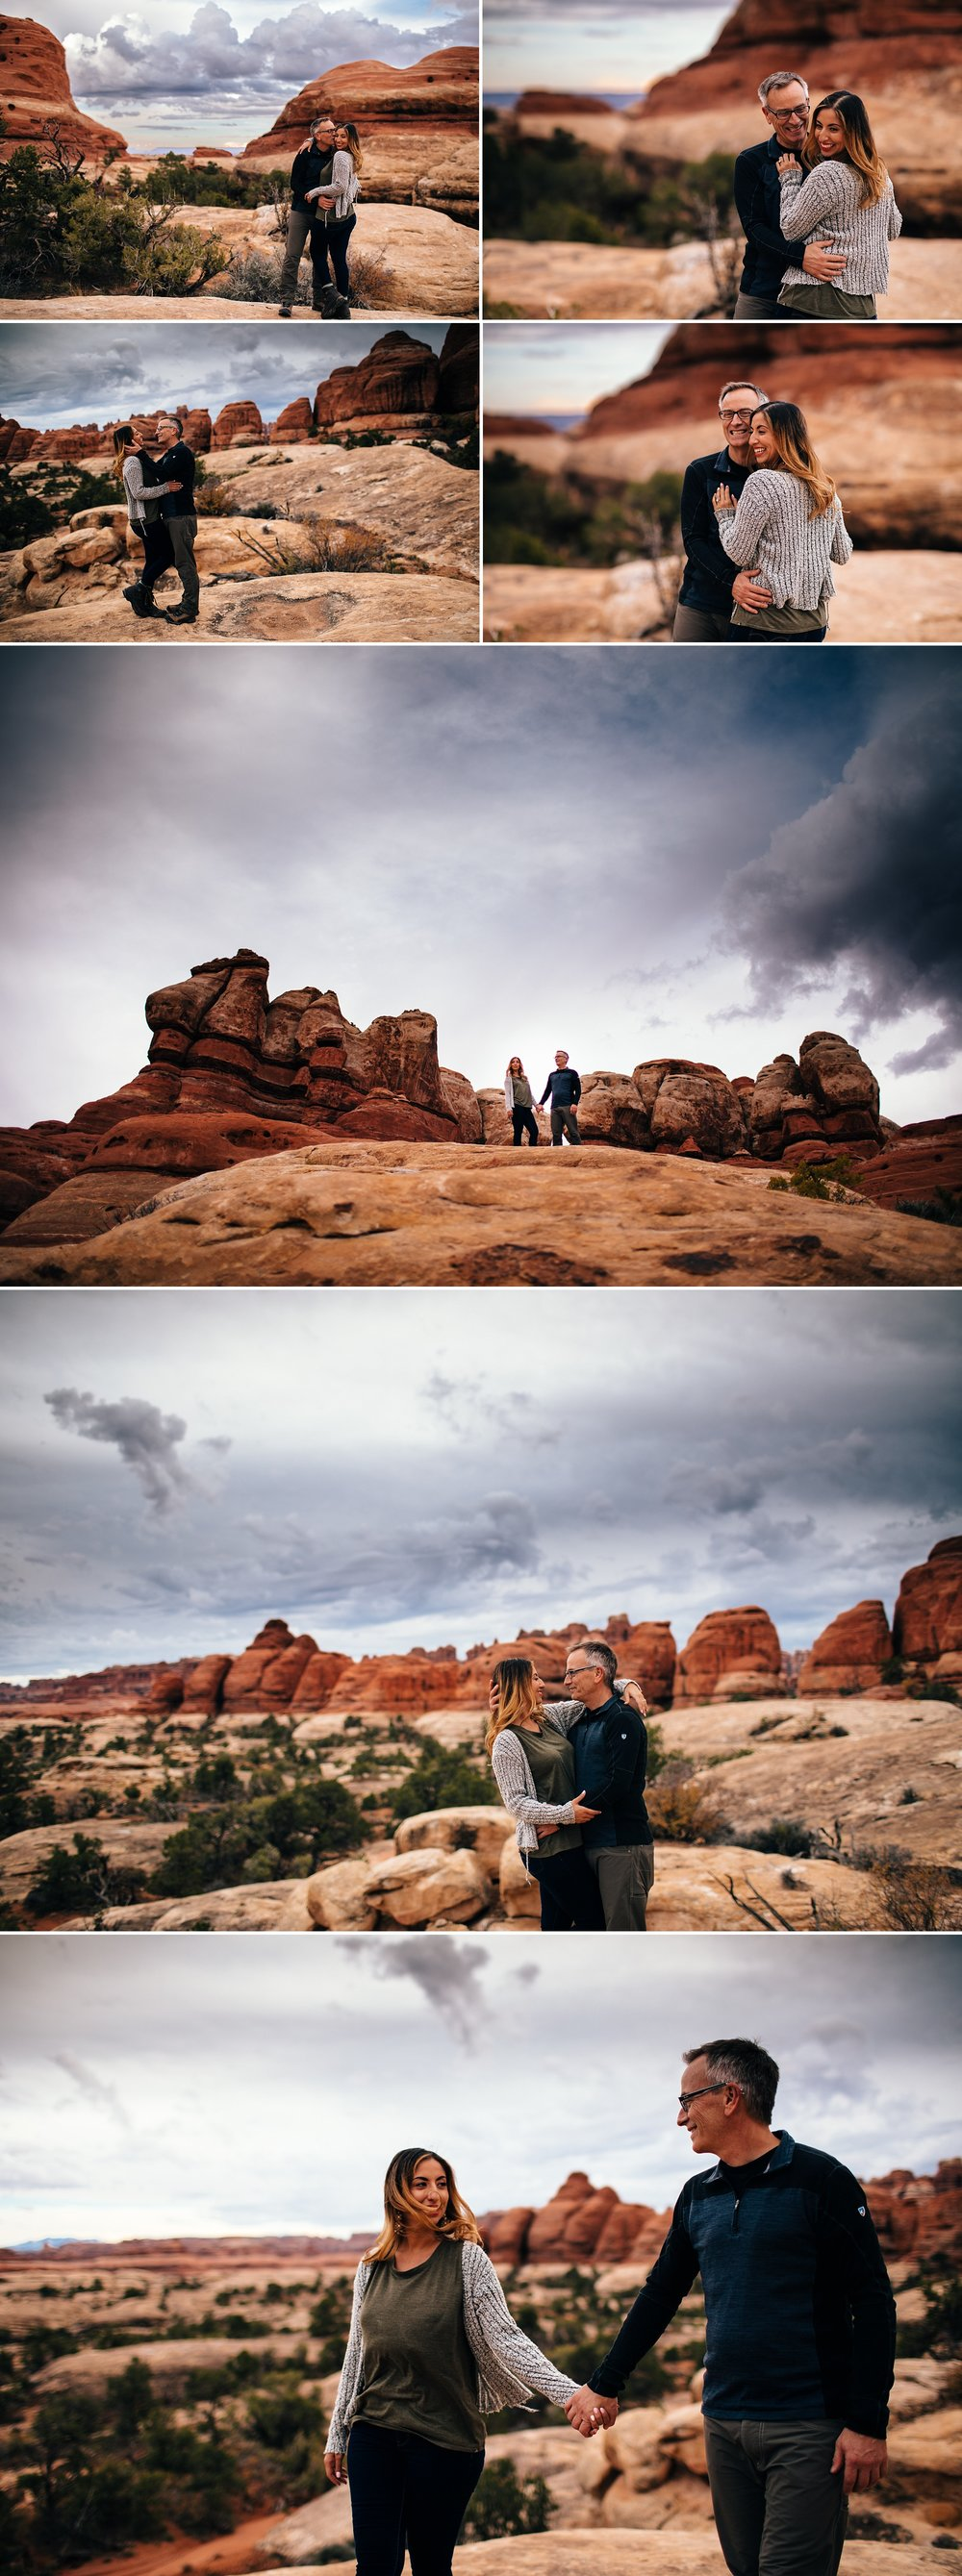 Val+Larry-Moab-Engagement-Session-Canyonlands-0021_WEB.jpg